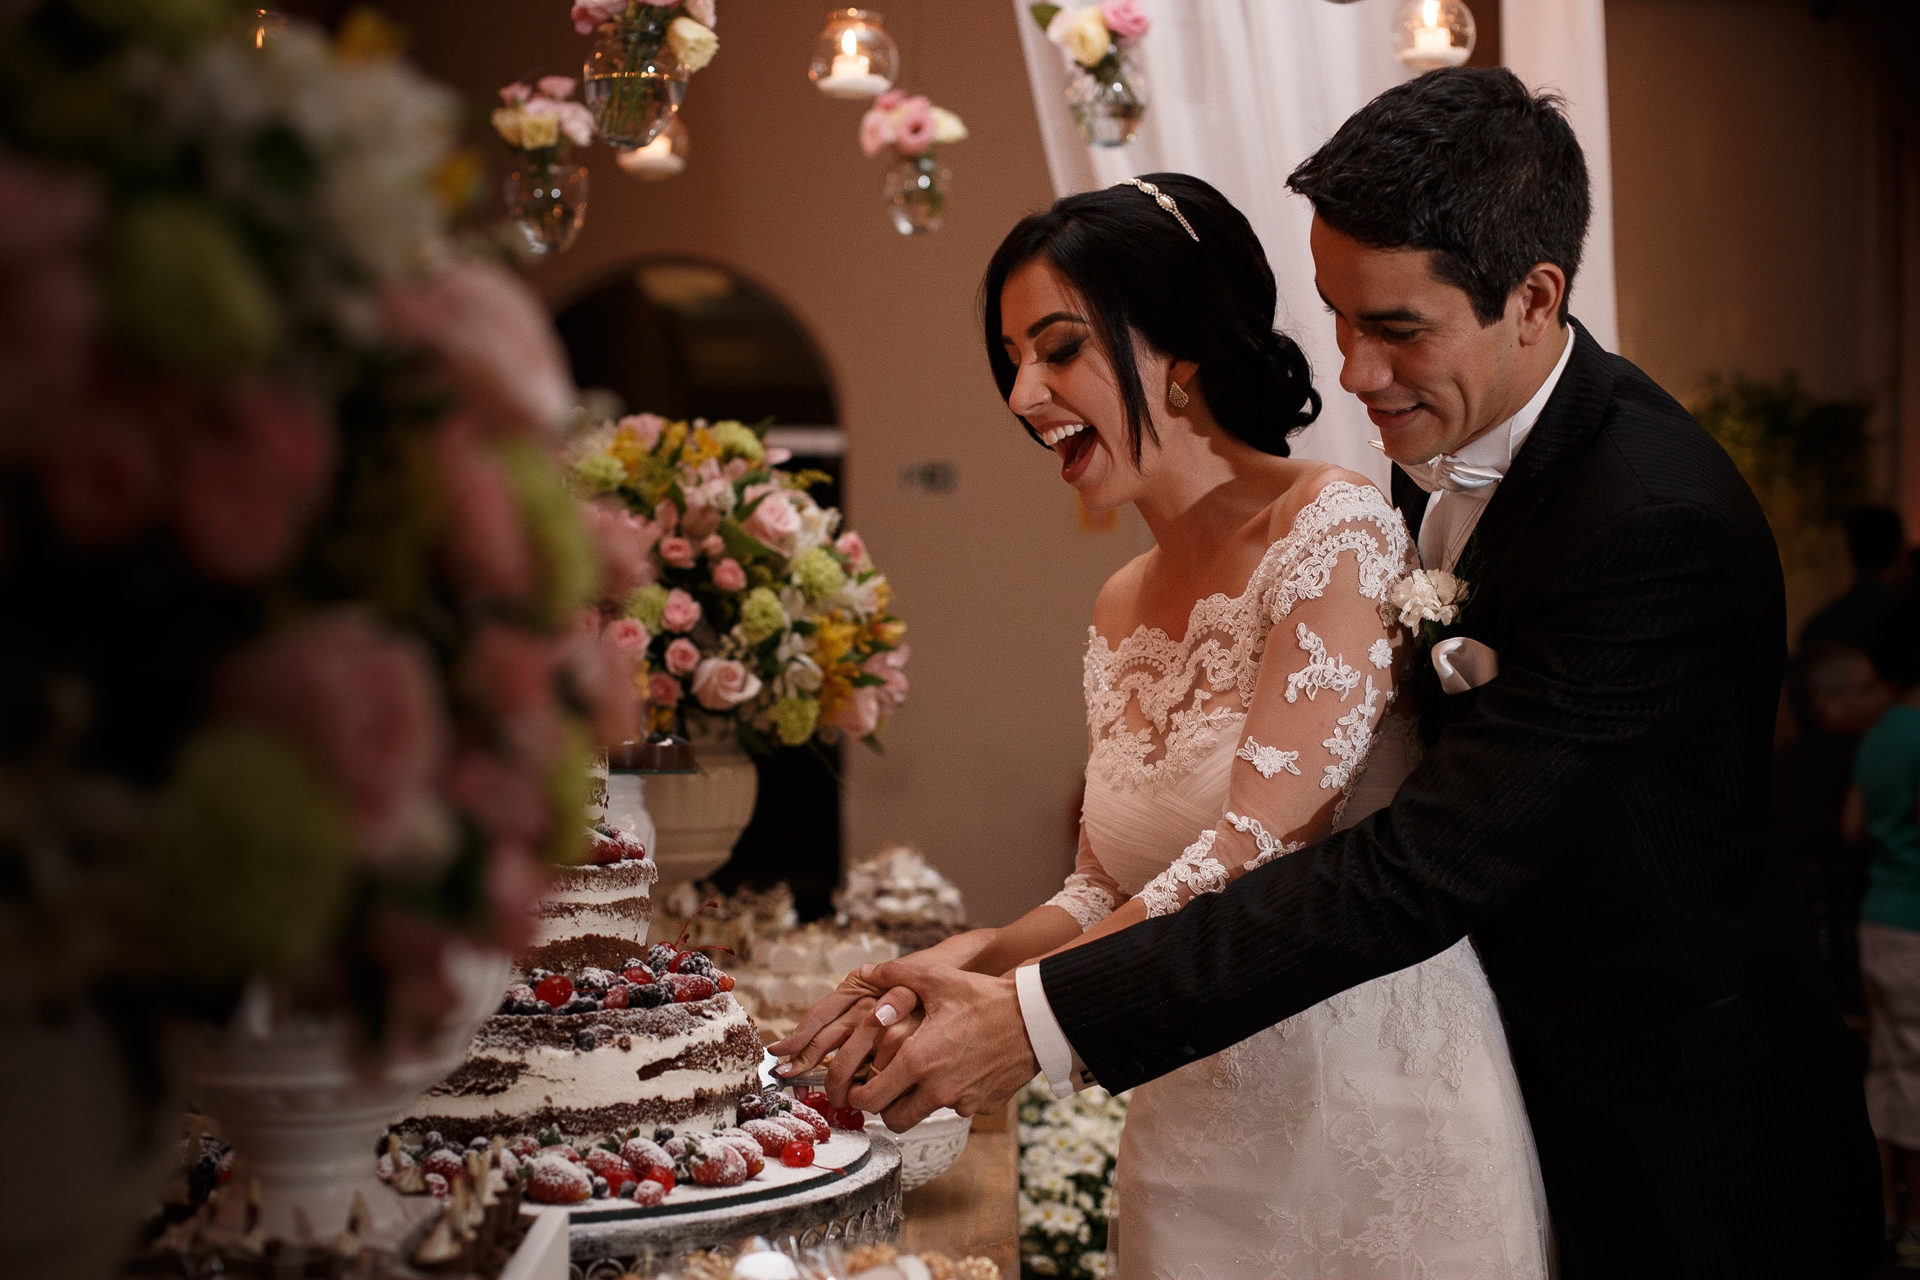 Isabela + Luis - Weddingday